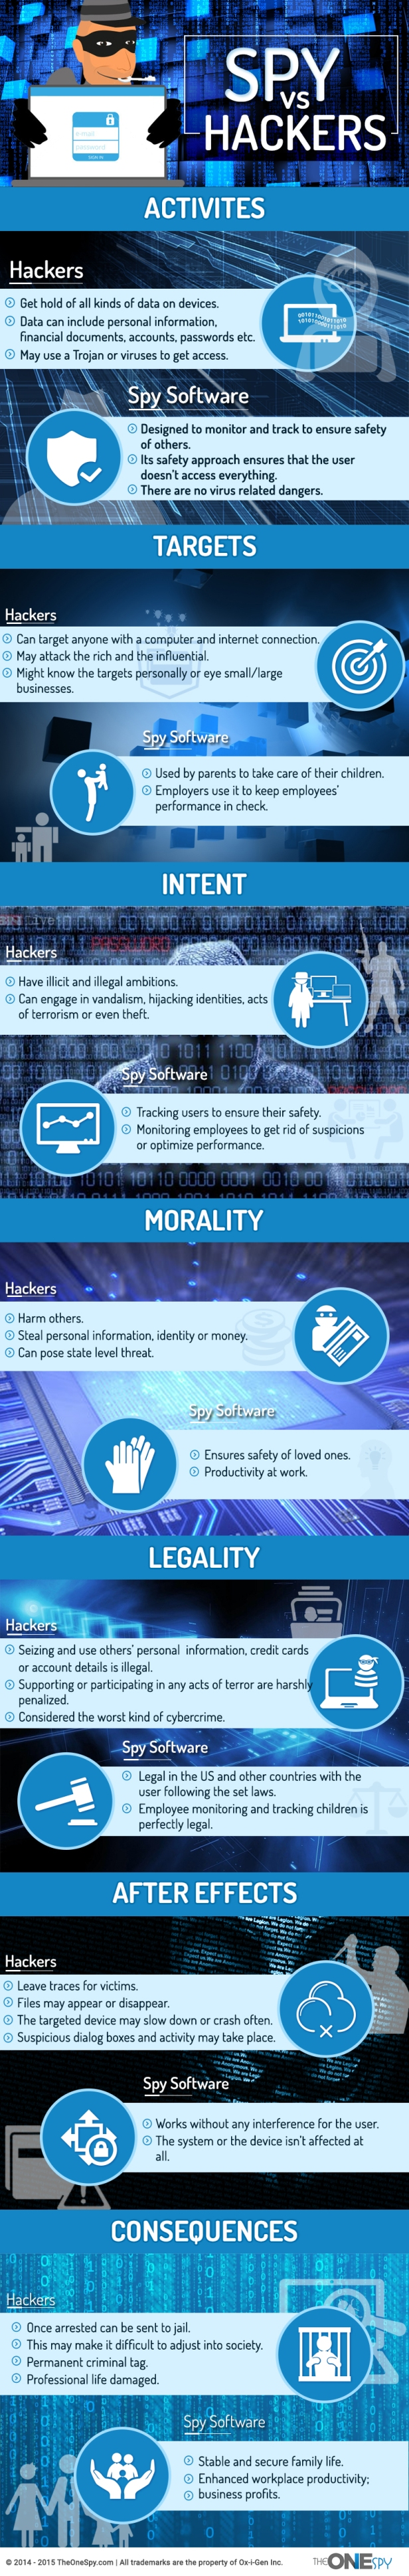 Spy Vs Hackers: What You Need To Know About Spyware & Hackers